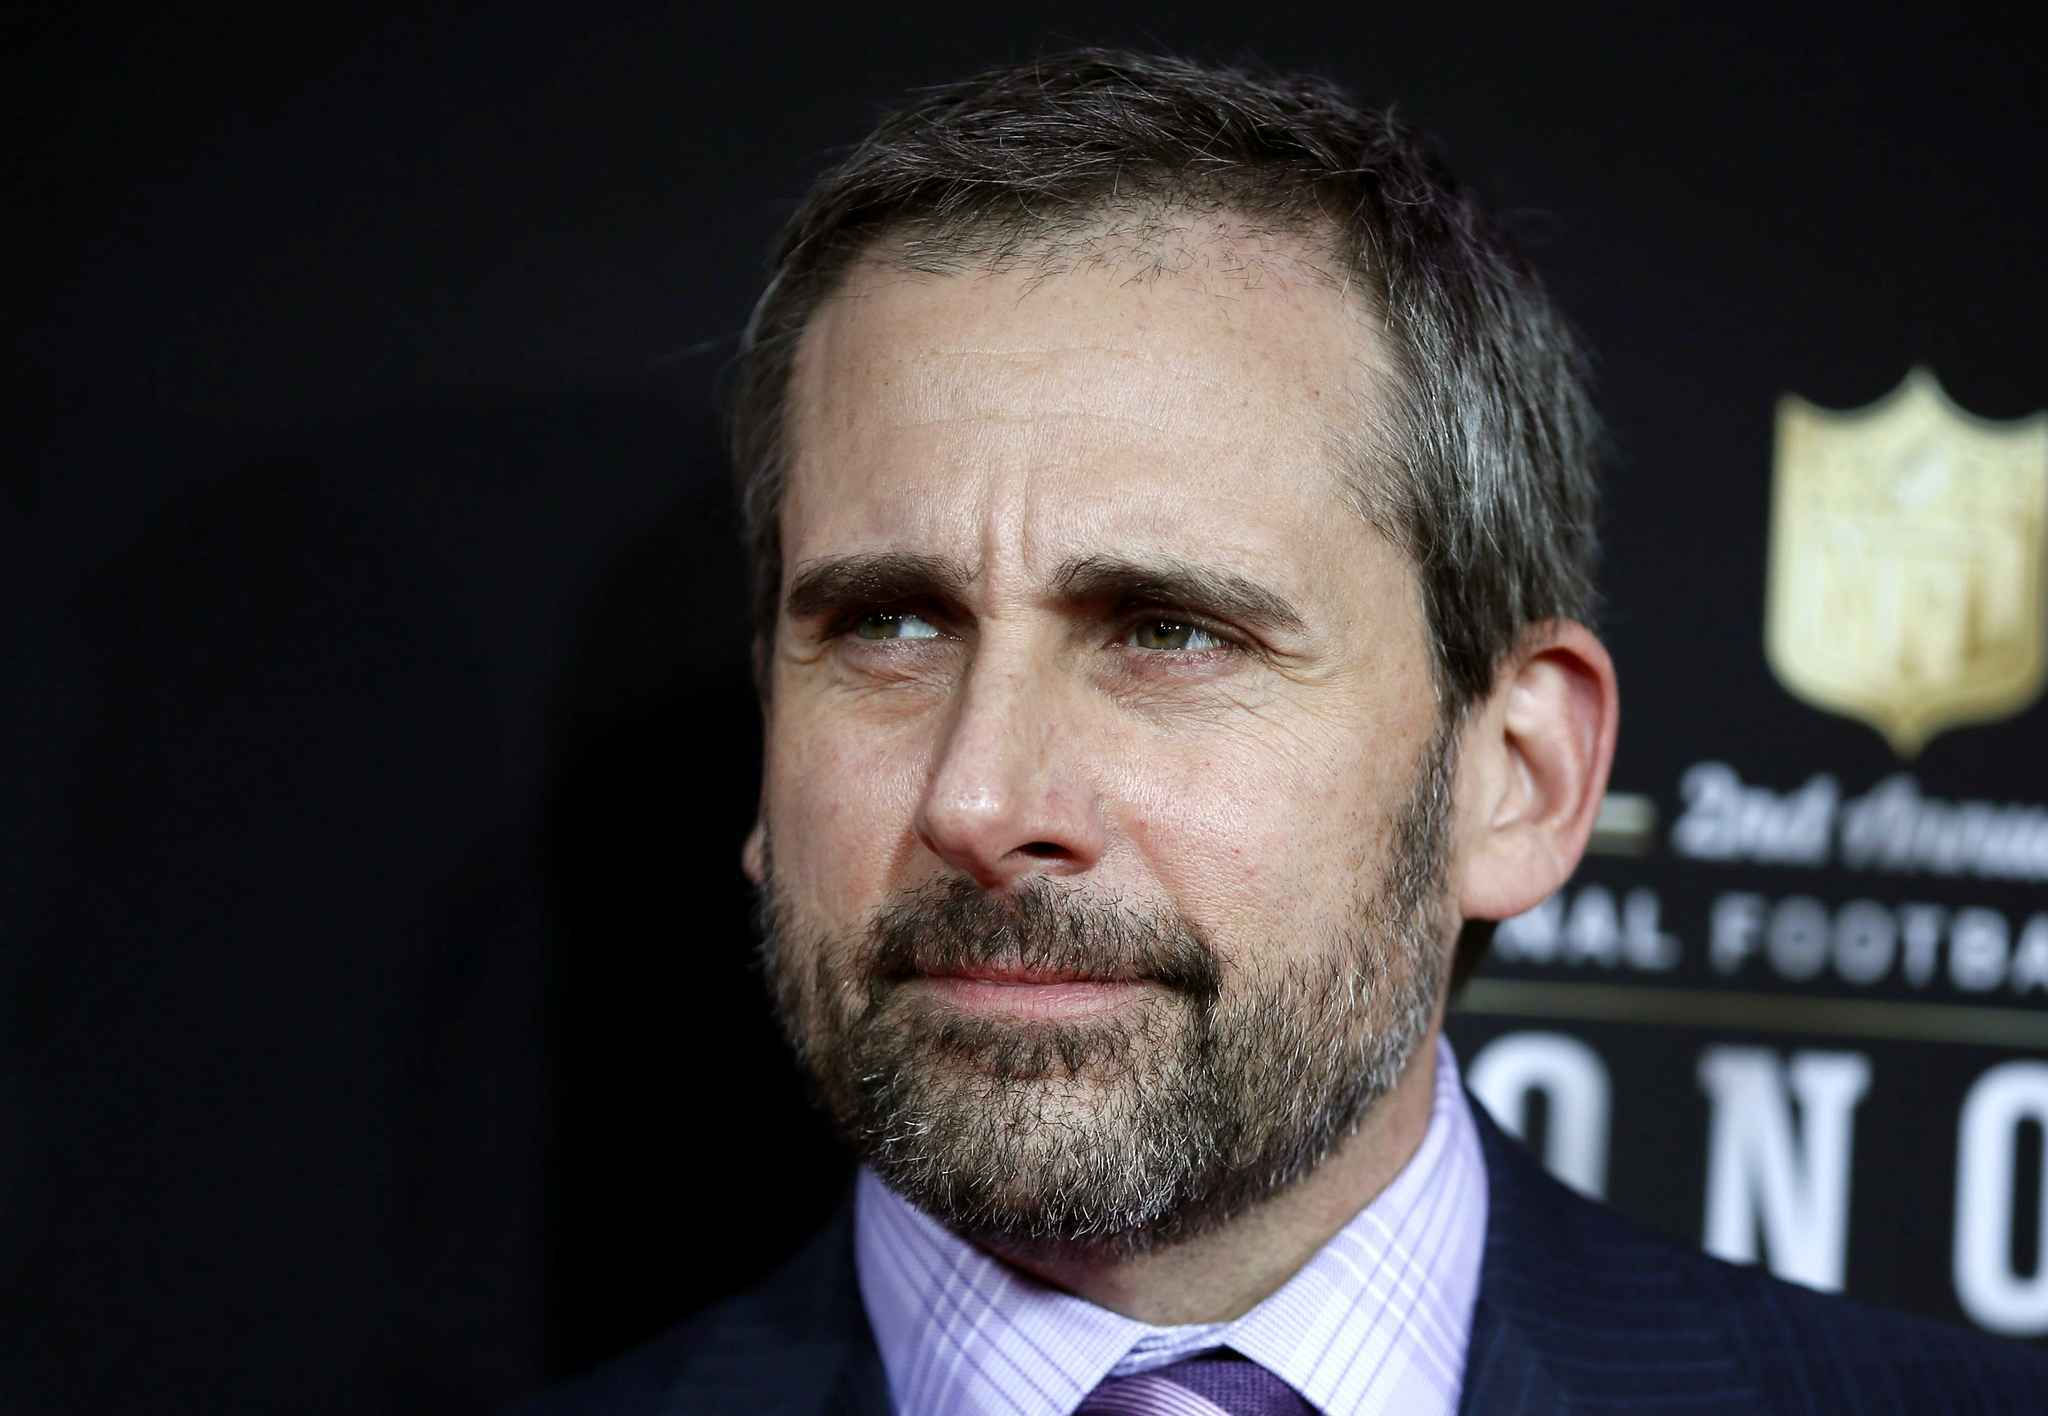 Steve Carell Wallpapers Image Photos Pictures Backgrounds